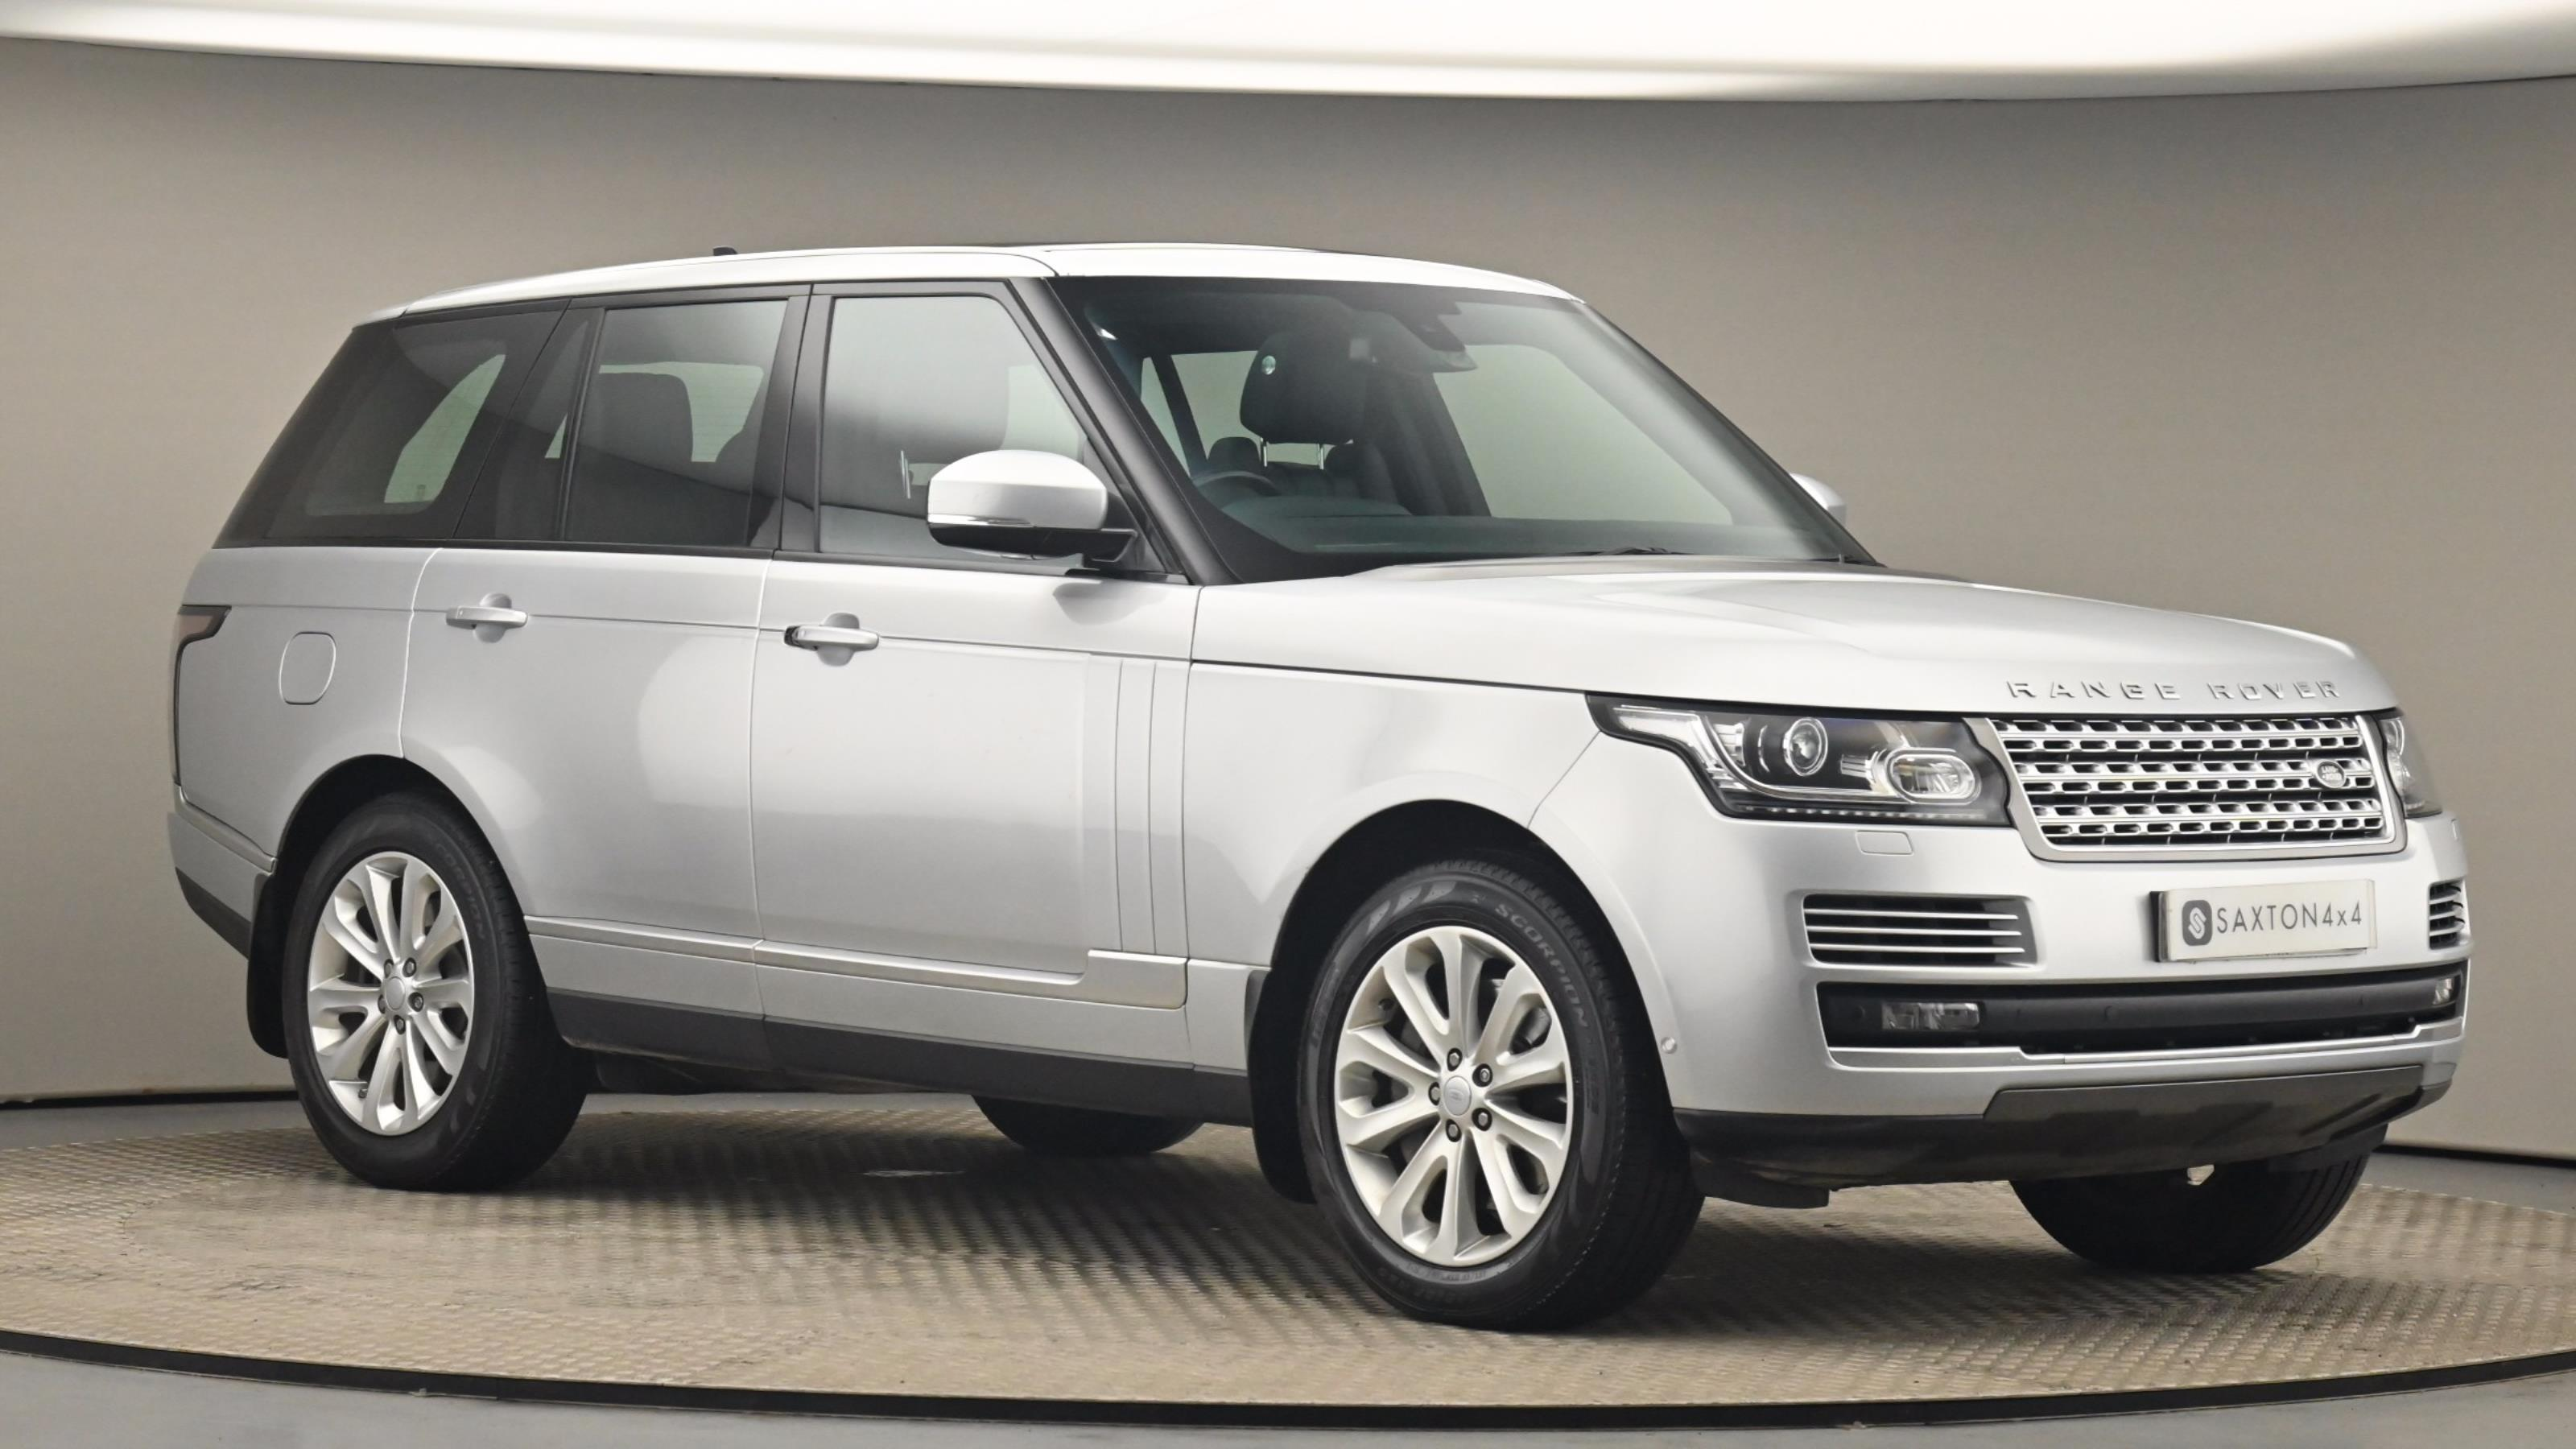 Used 2016 Land Rover RANGE ROVER 4.4 SDV8 Vogue 4dr Auto at Saxton4x4